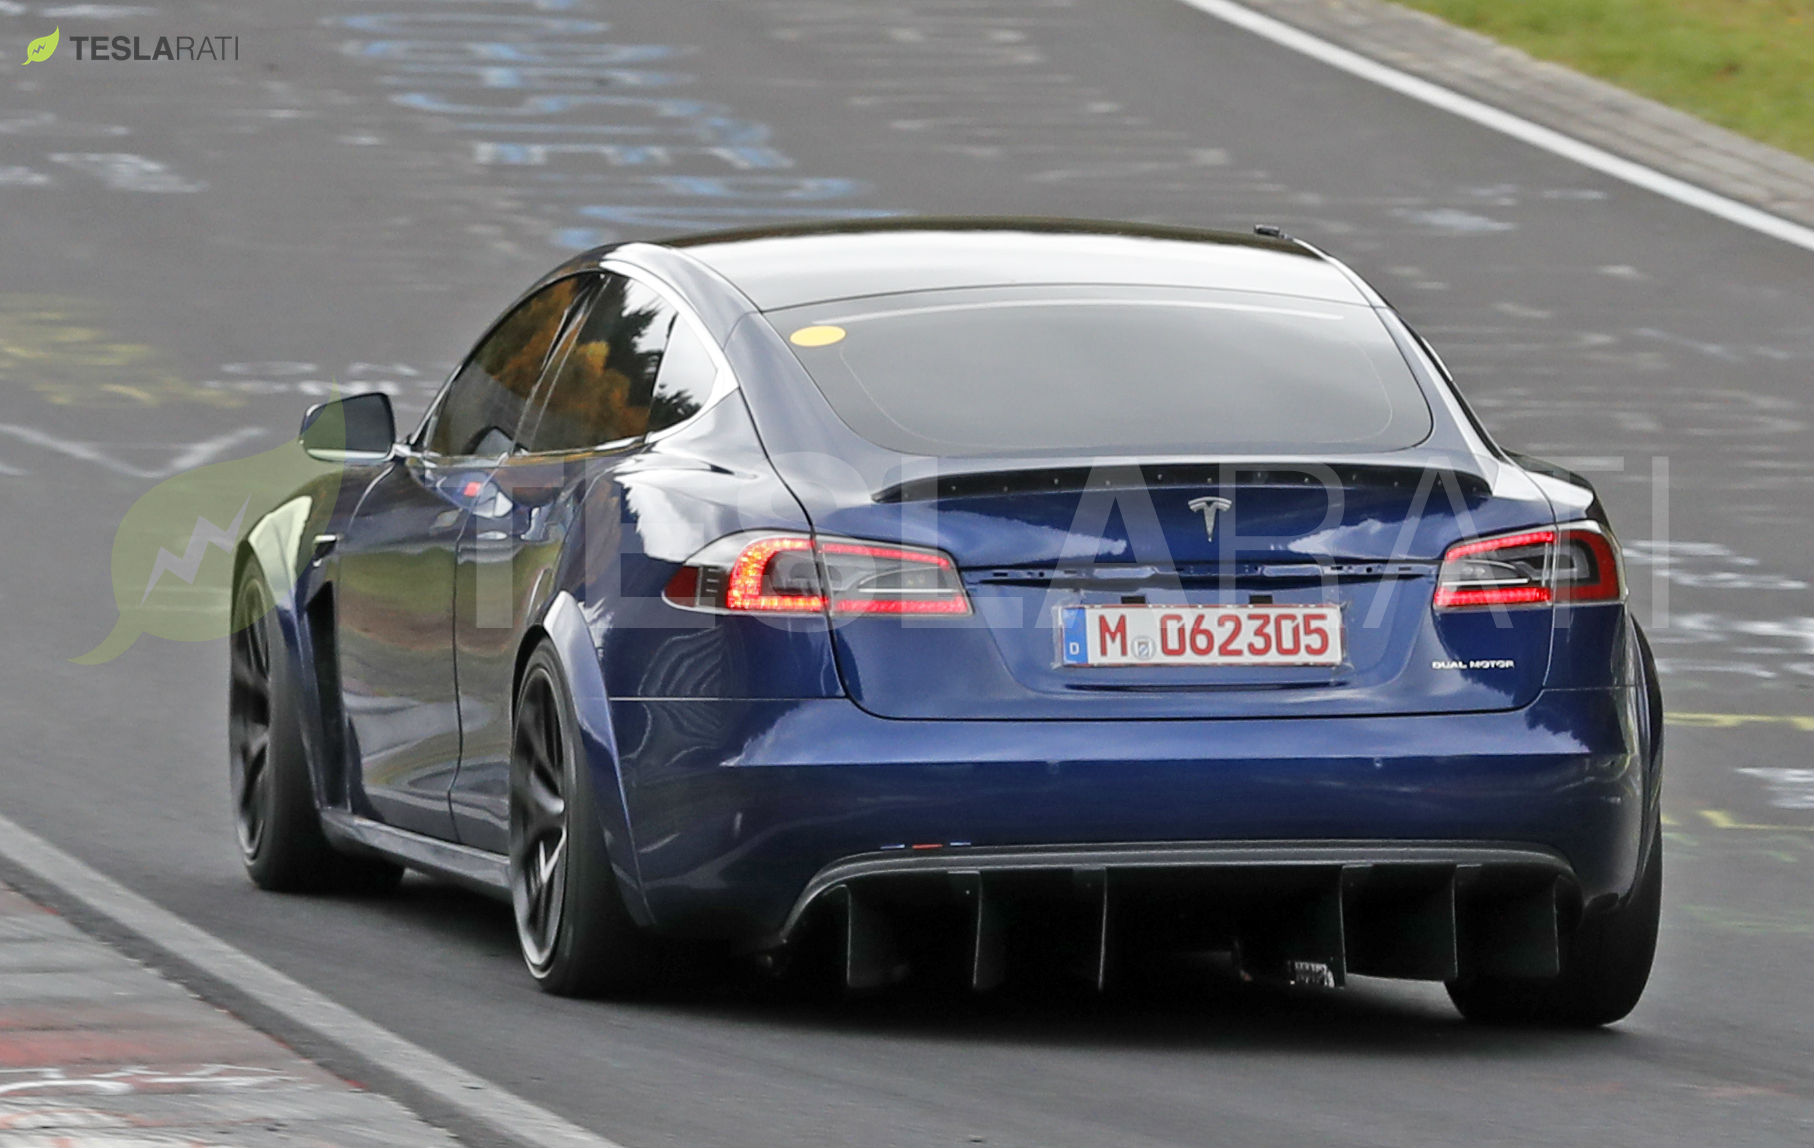 Tesla Model S Plaid may be required to use a parachute when racing in drag strips